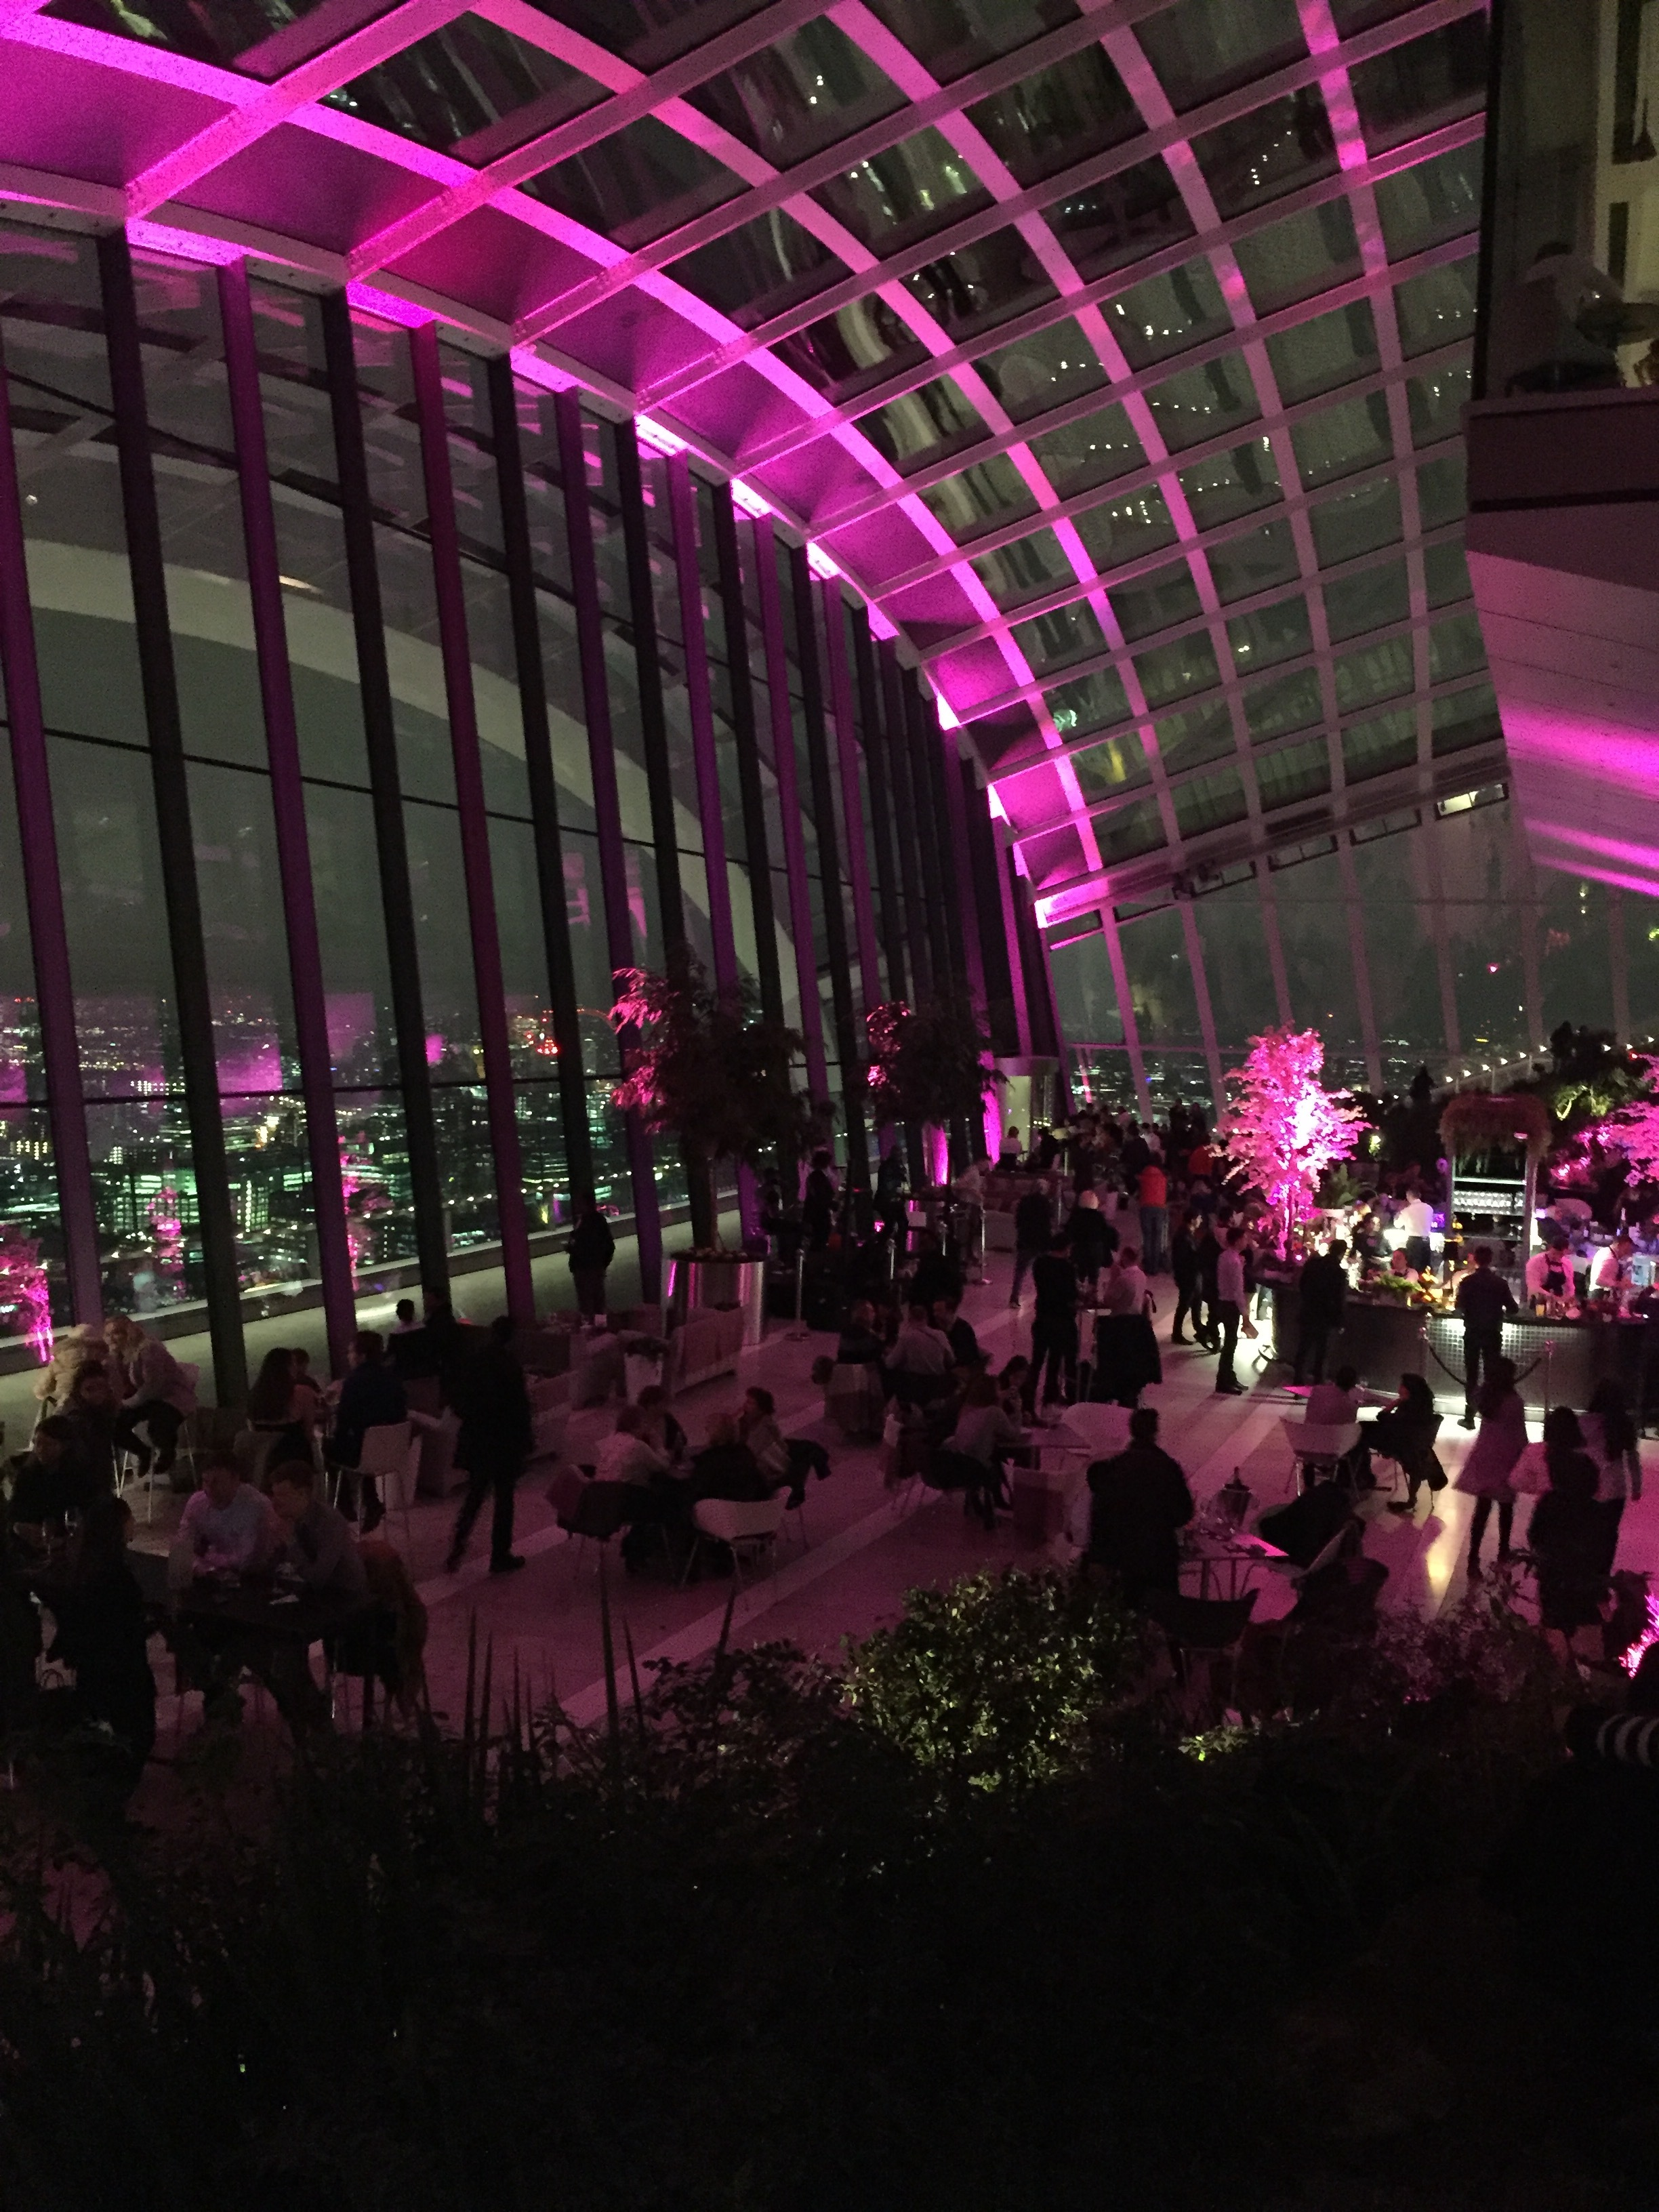 SkyGarden at night